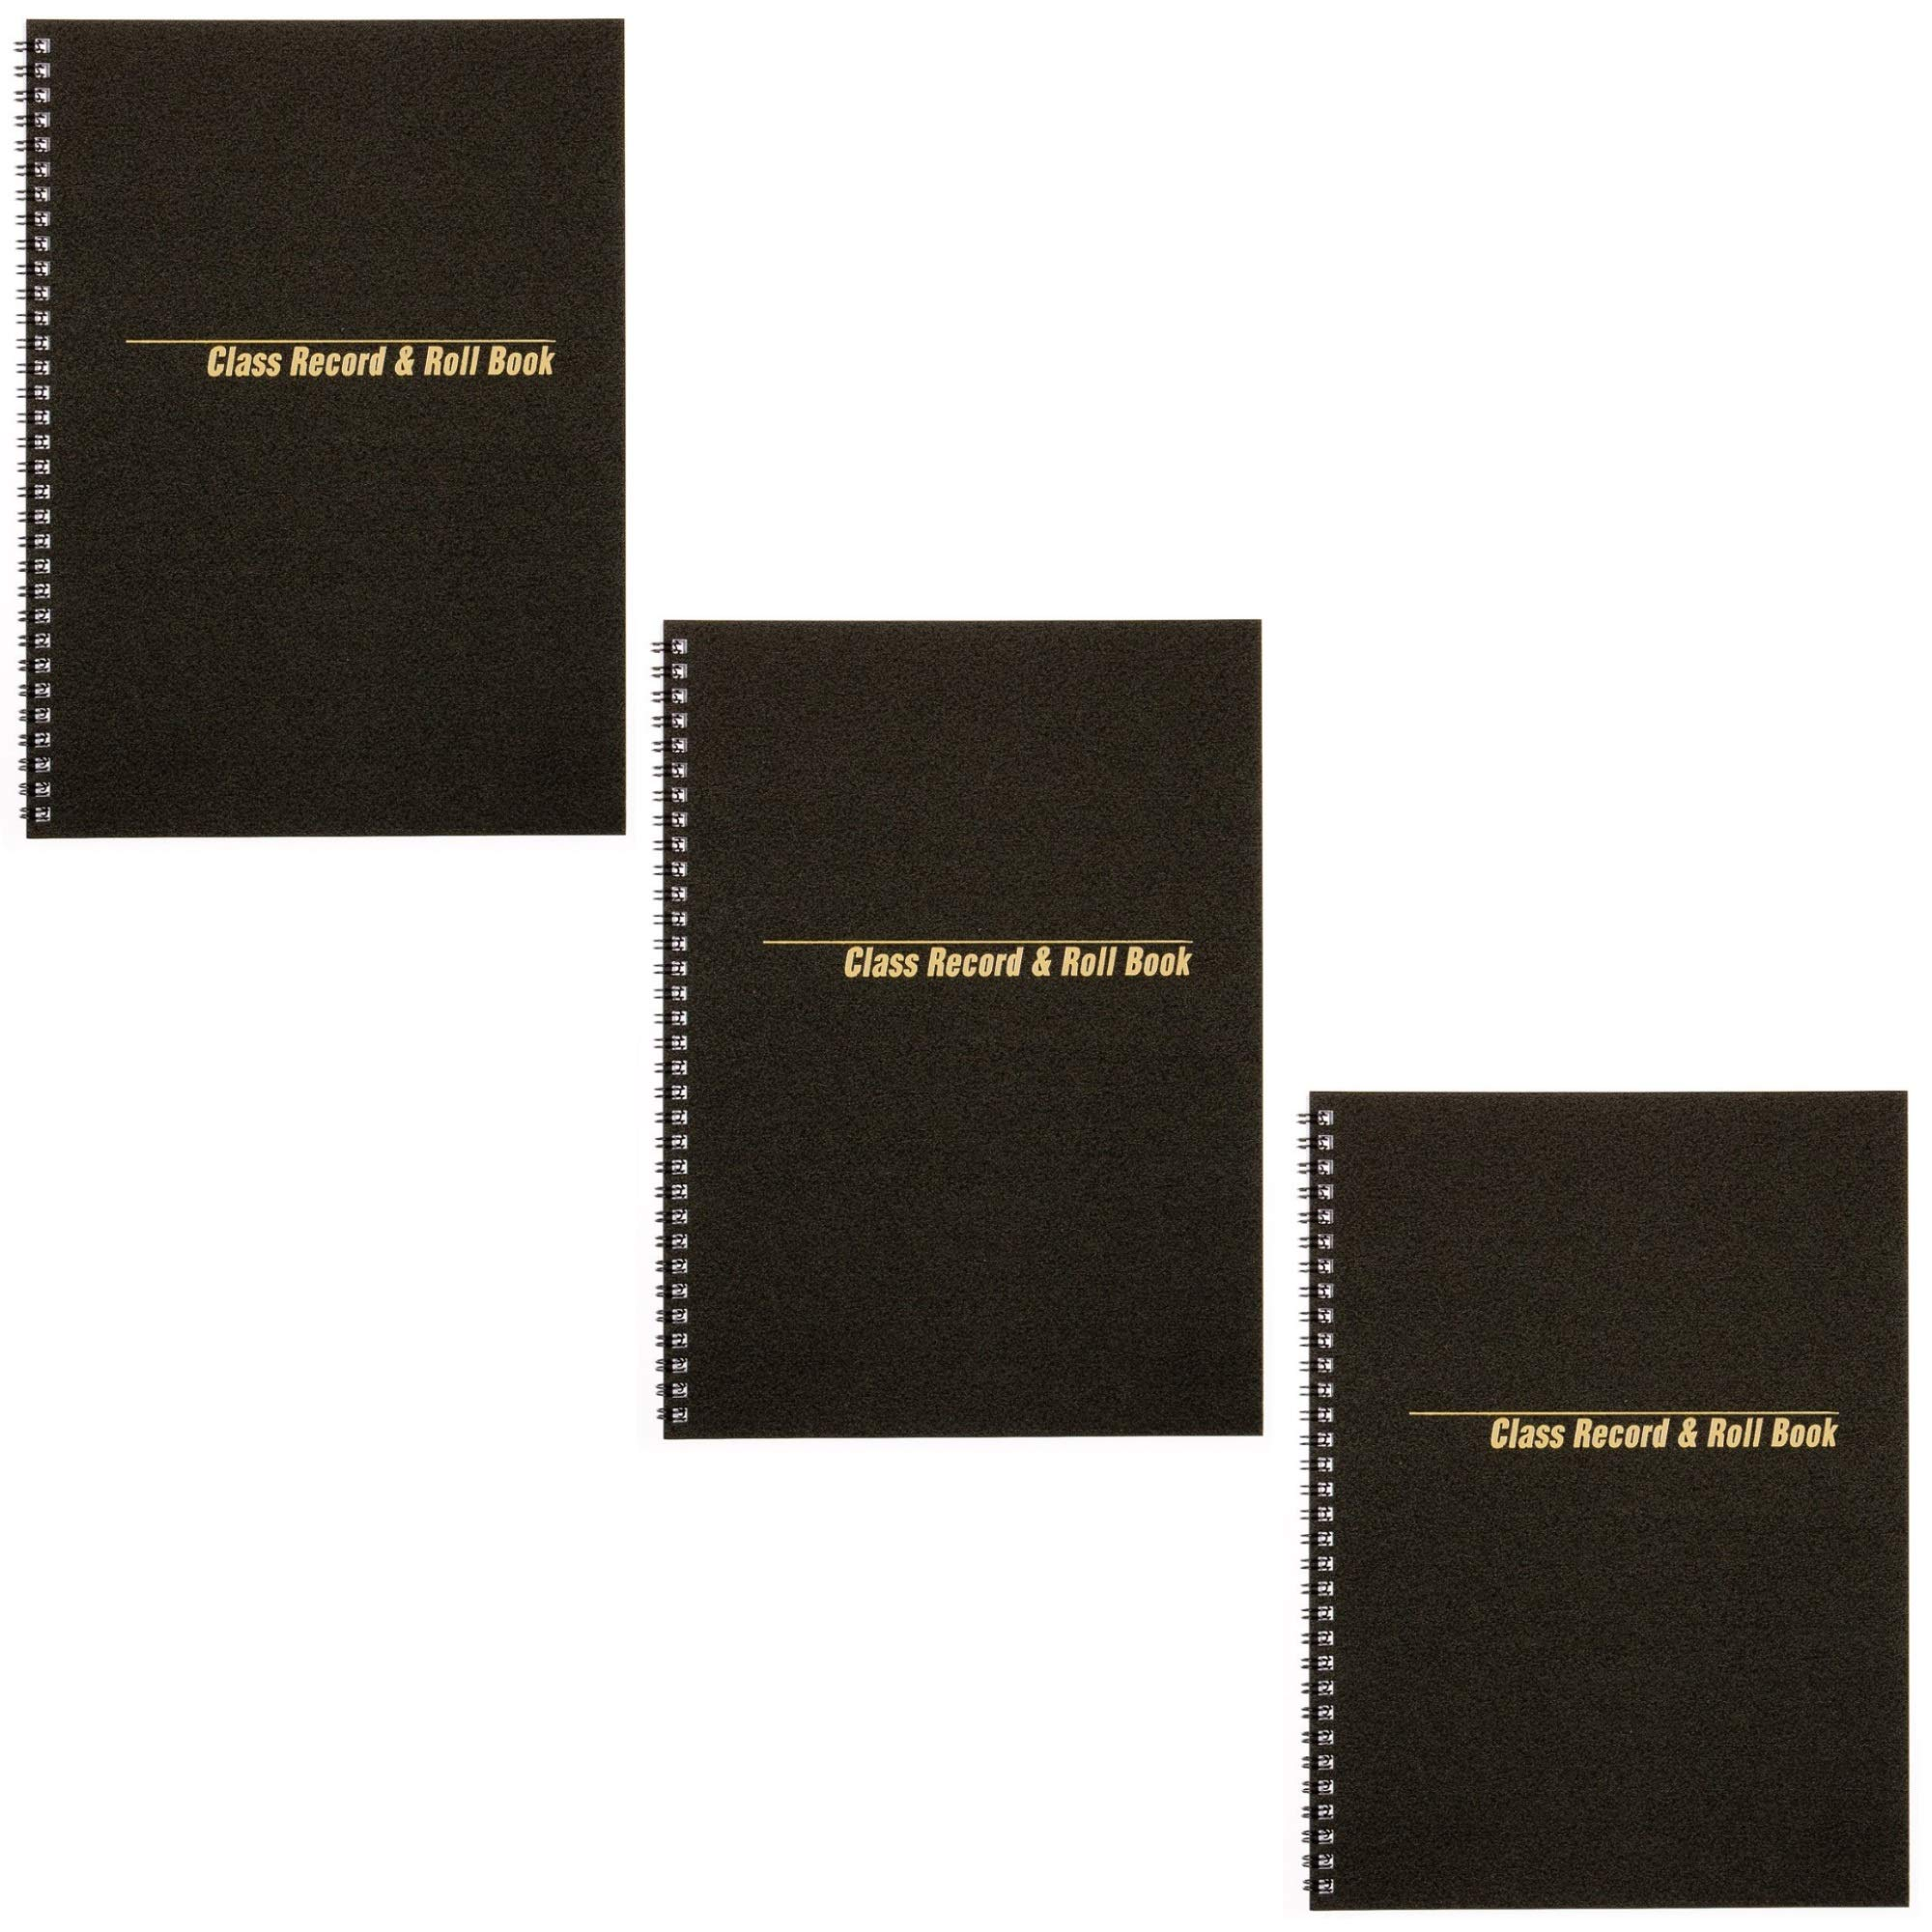 Rediform Class Record & Roll Book, 40 Sheets, 11''x8 1/2'', (33988), 3 PACK